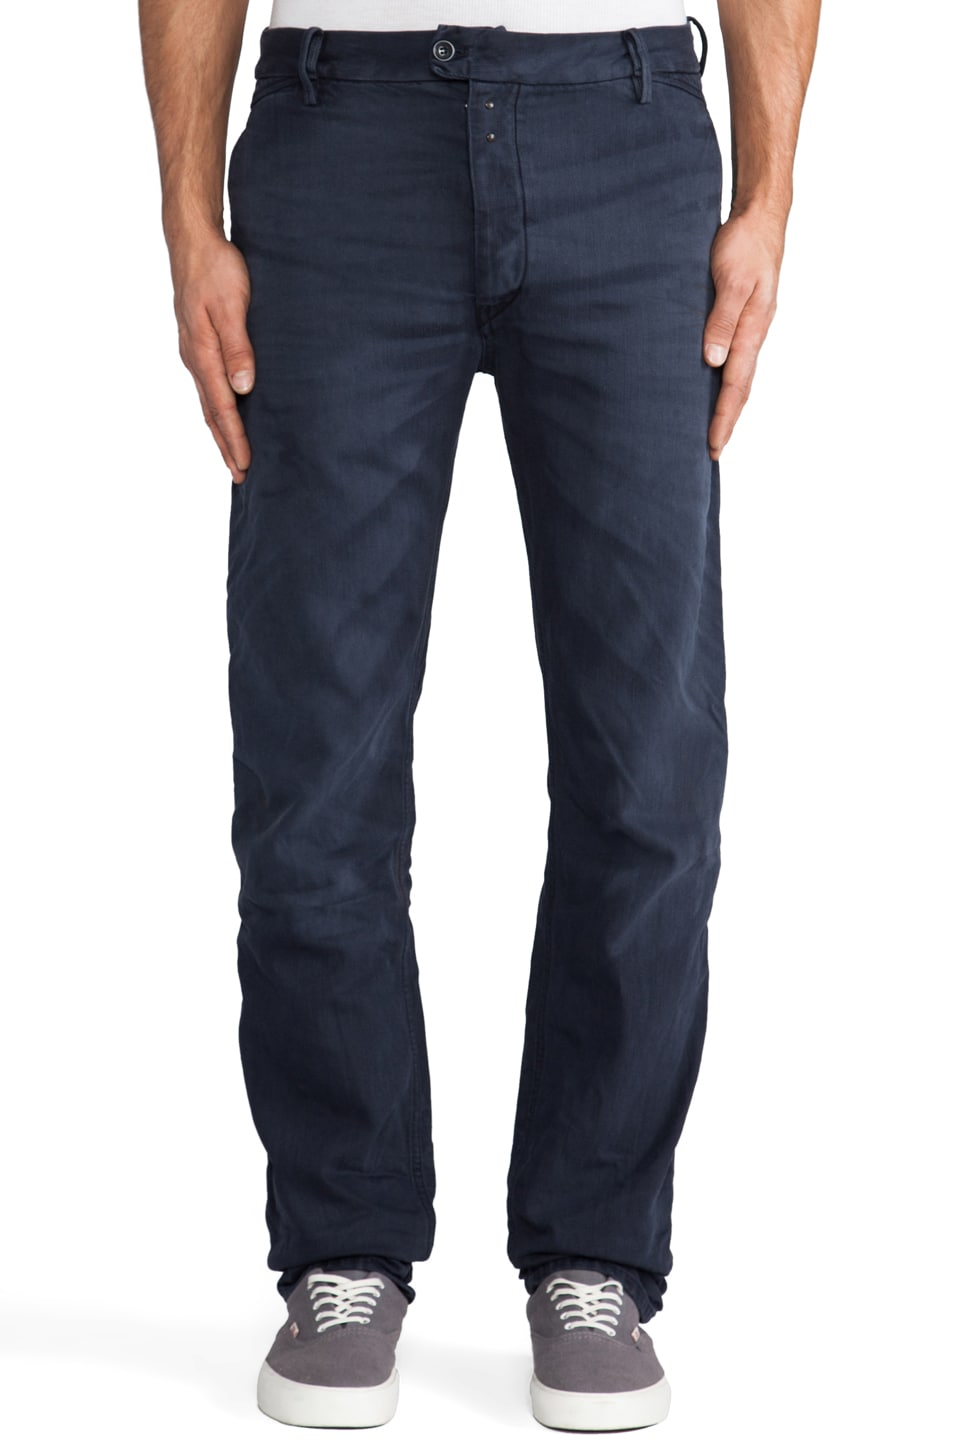 Diesel Chi Pant in Navy Blue